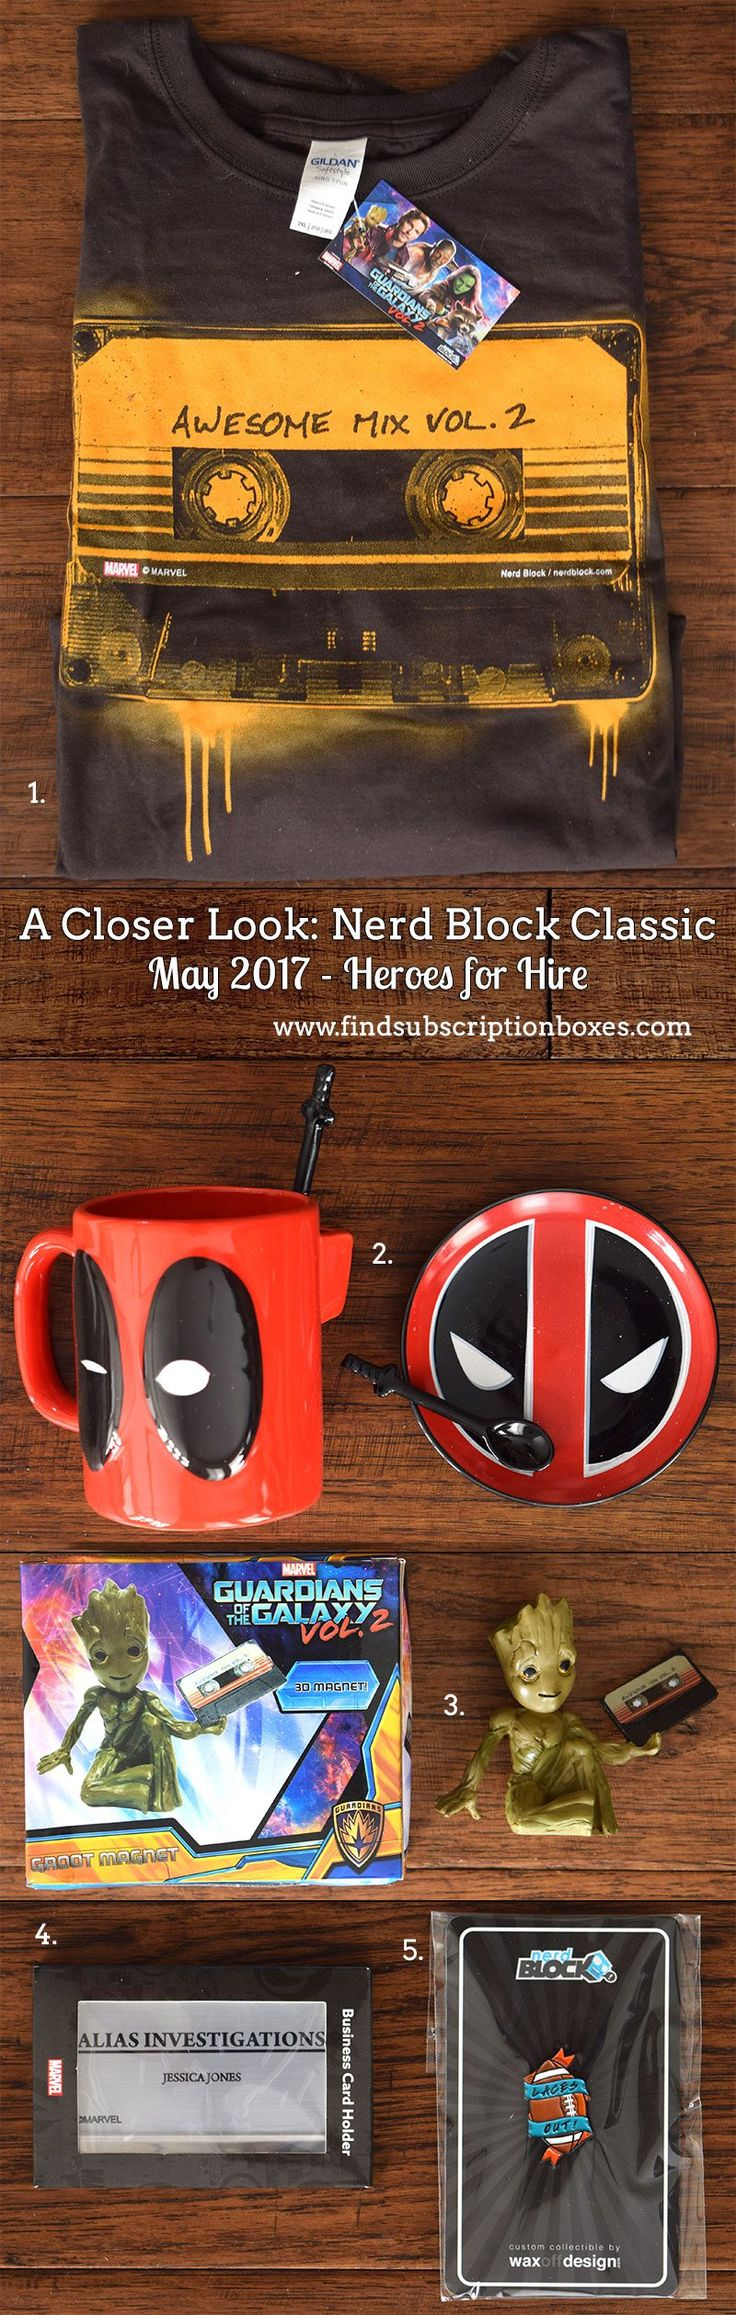 May's Nerd Block Classic Heroes for Hire Block unboxed! Guardians of the Galaxy Vol. 2 tee, Baby Groot 3D magnet, Deadpool coffee set and more nerd collectibles. Read our review and grab our exclusive 15% off promo code…